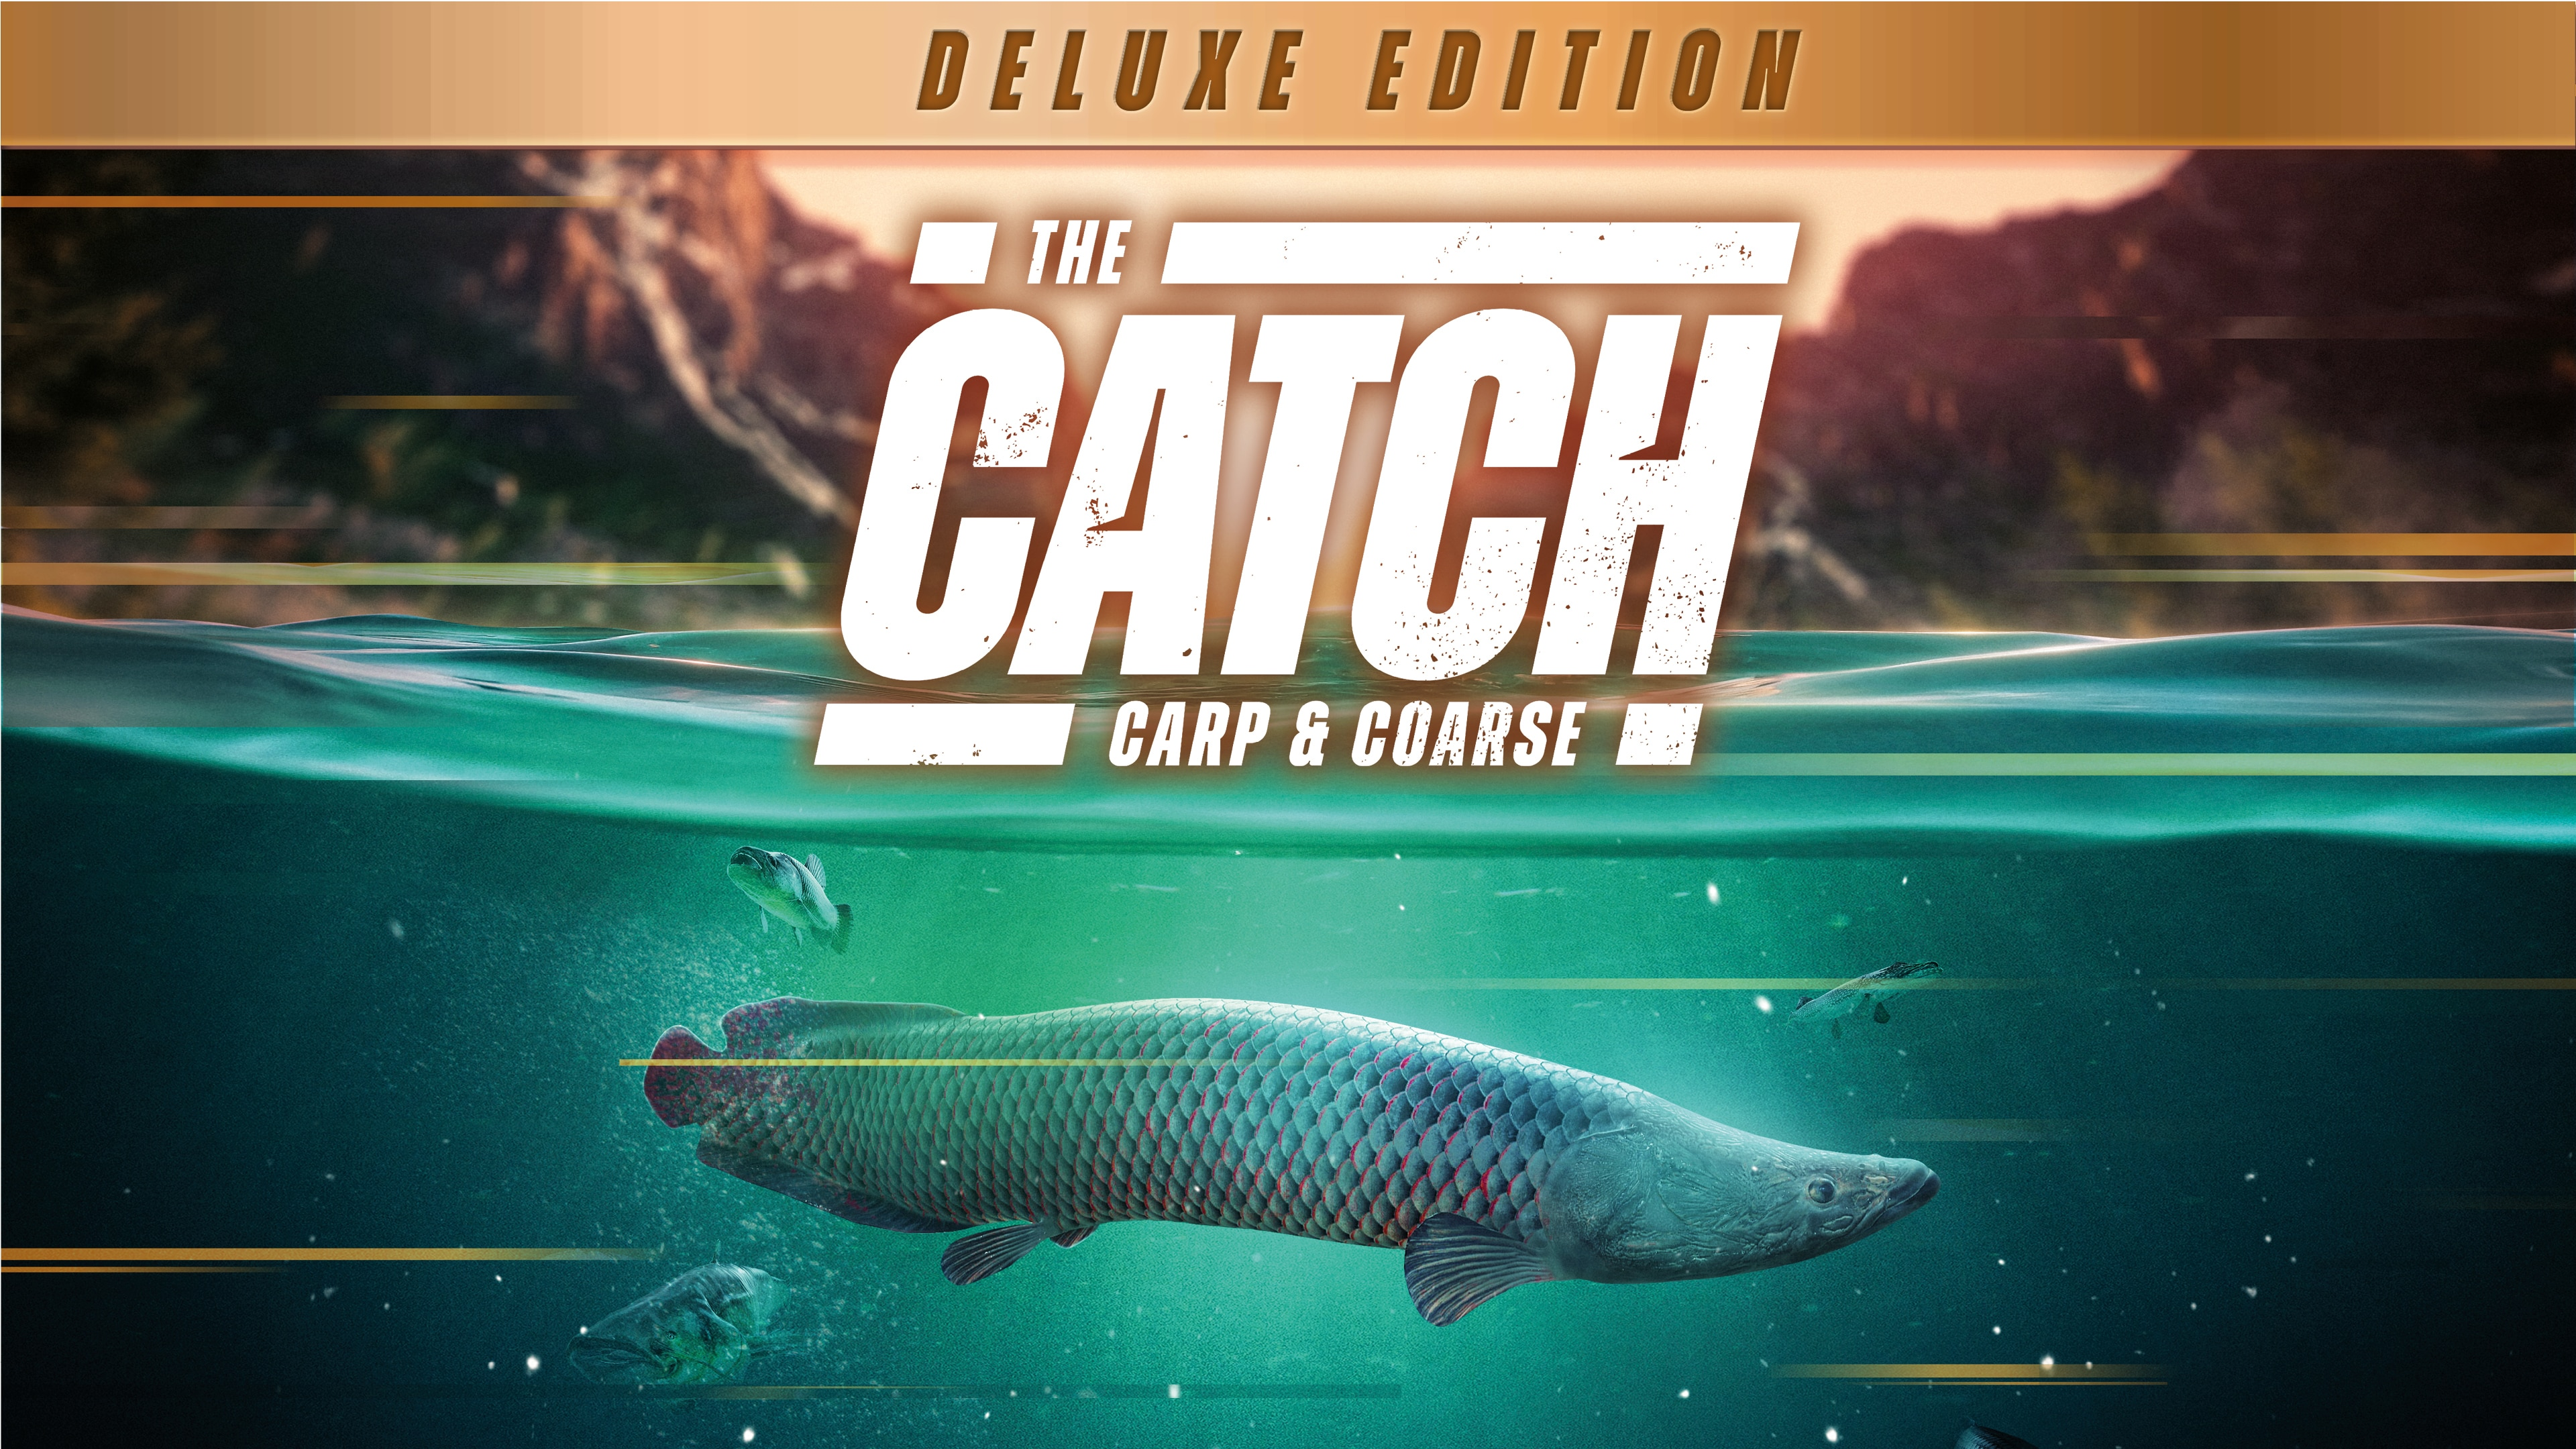 The Catch: Carp & Coarse - Deluxe Edition